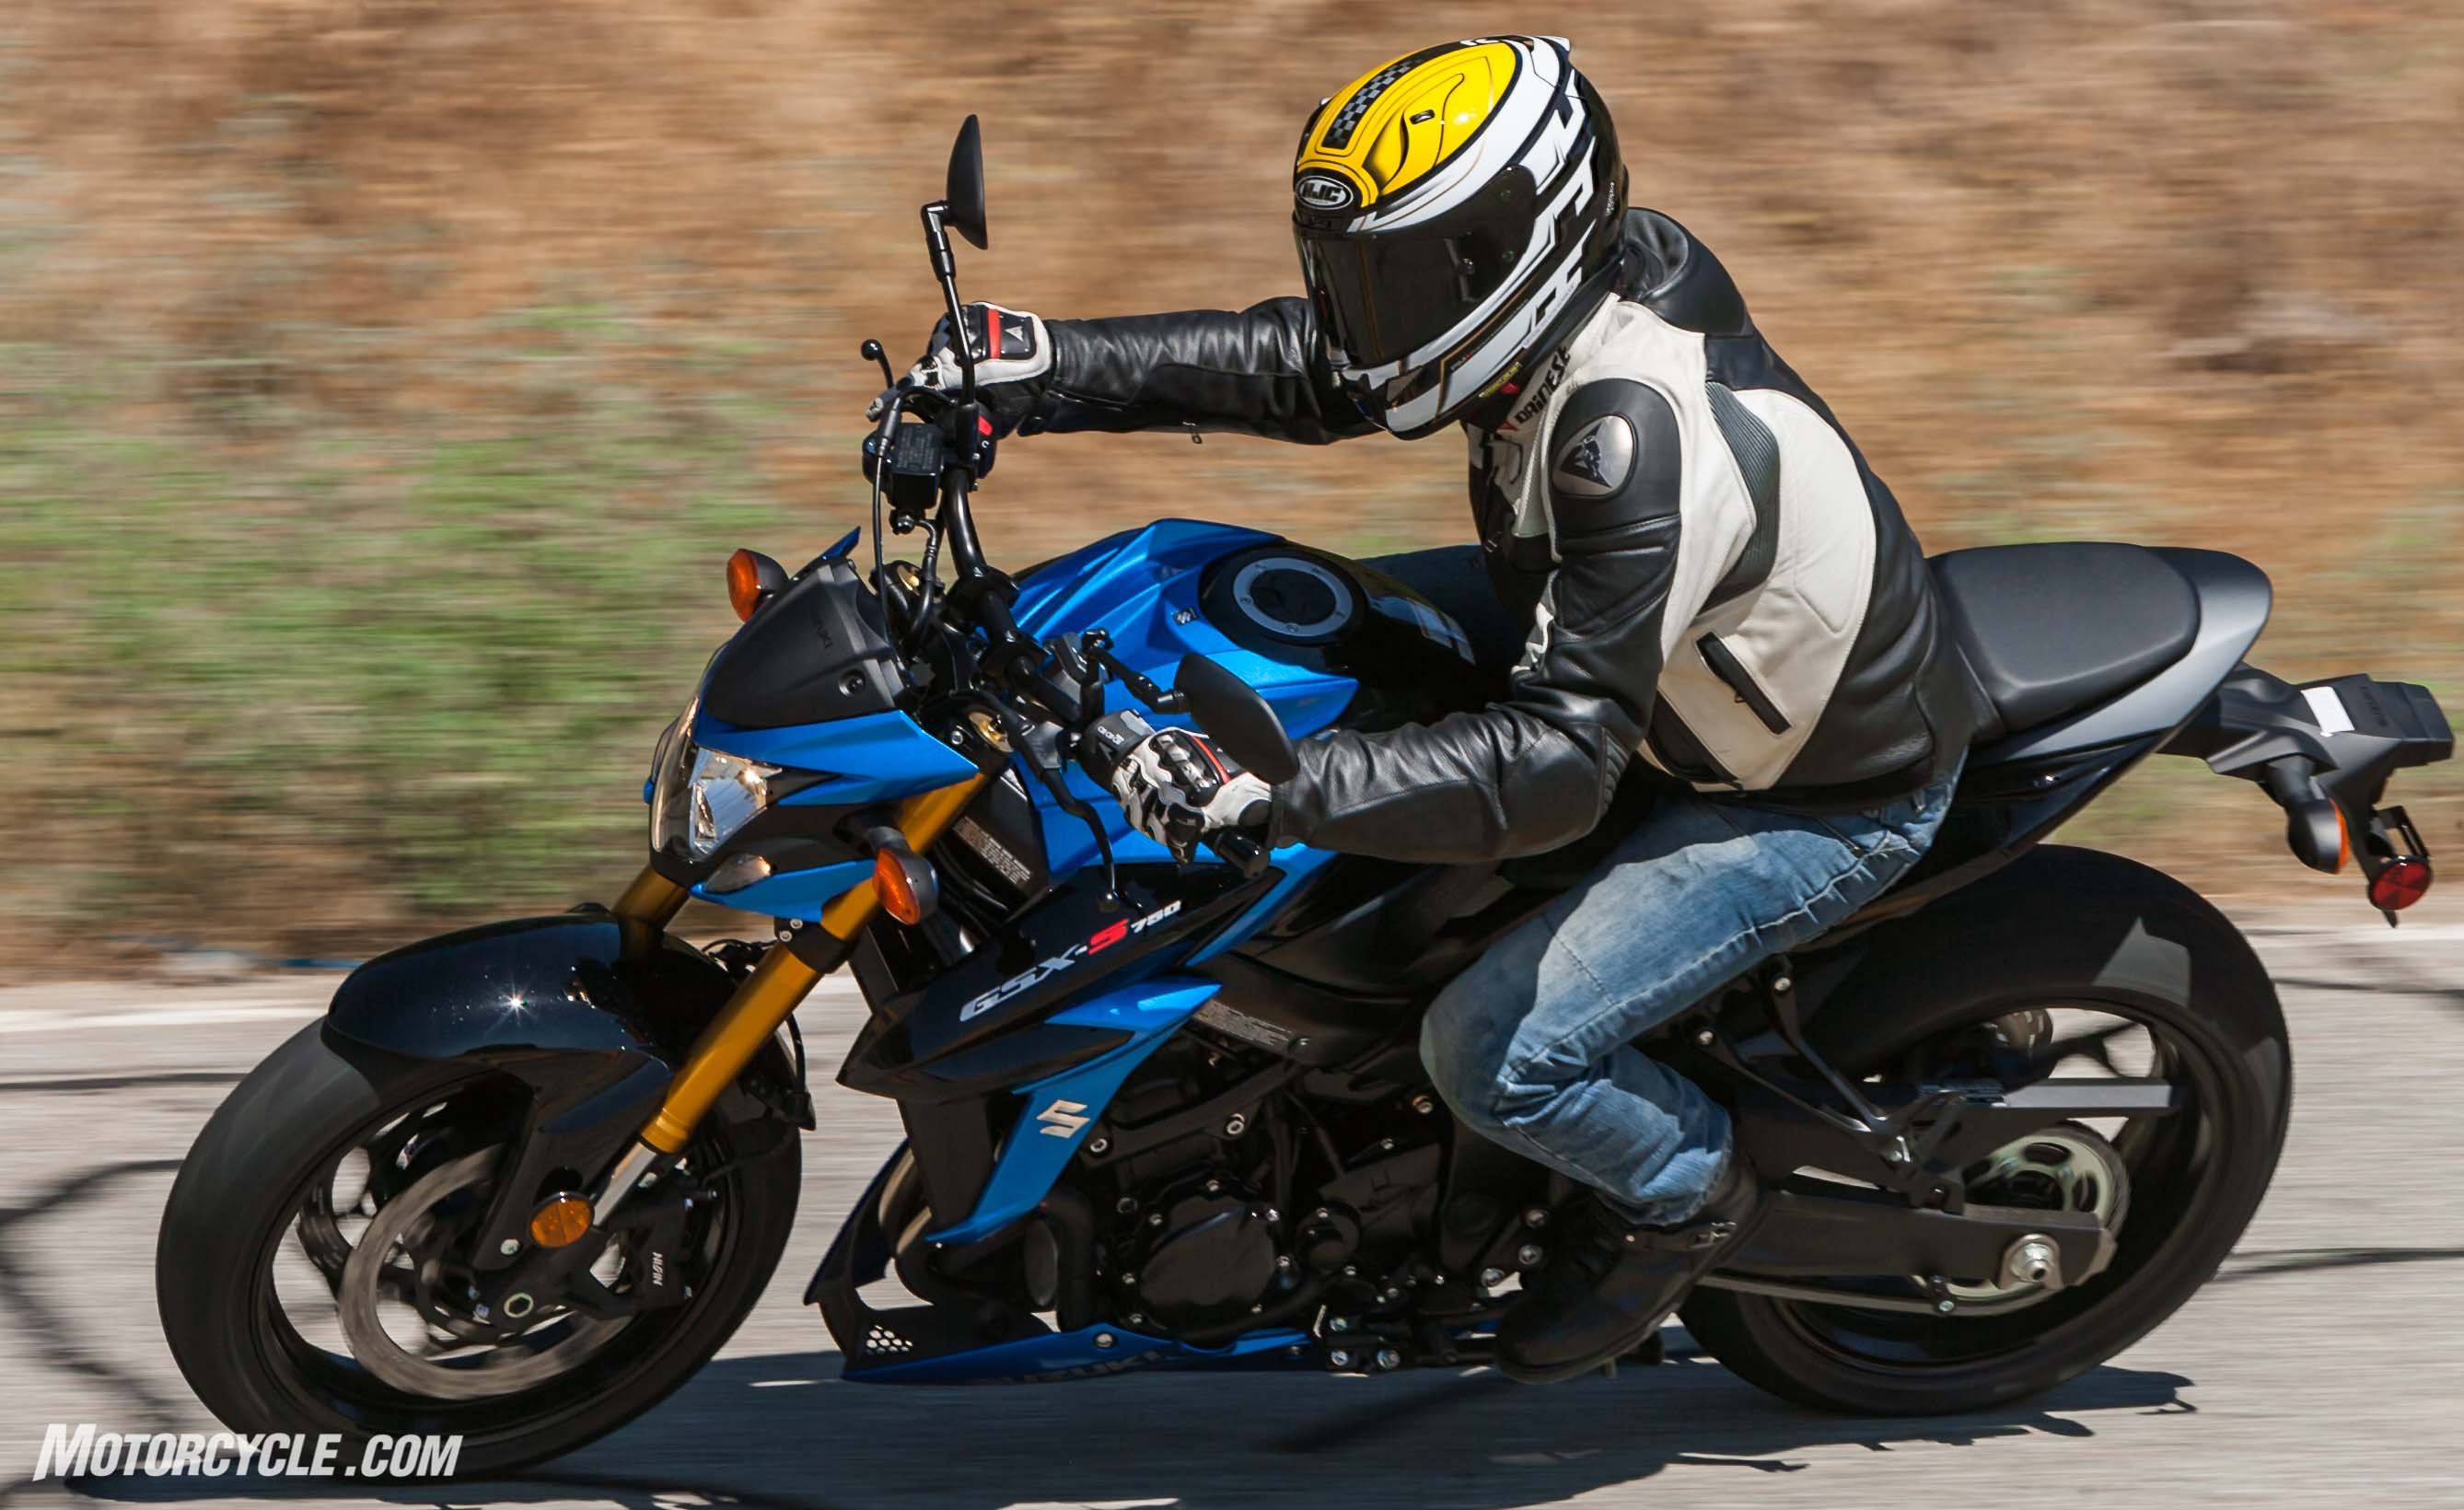 2018 Suzuki GSX-S750 Review - Motorcycle com First Ride